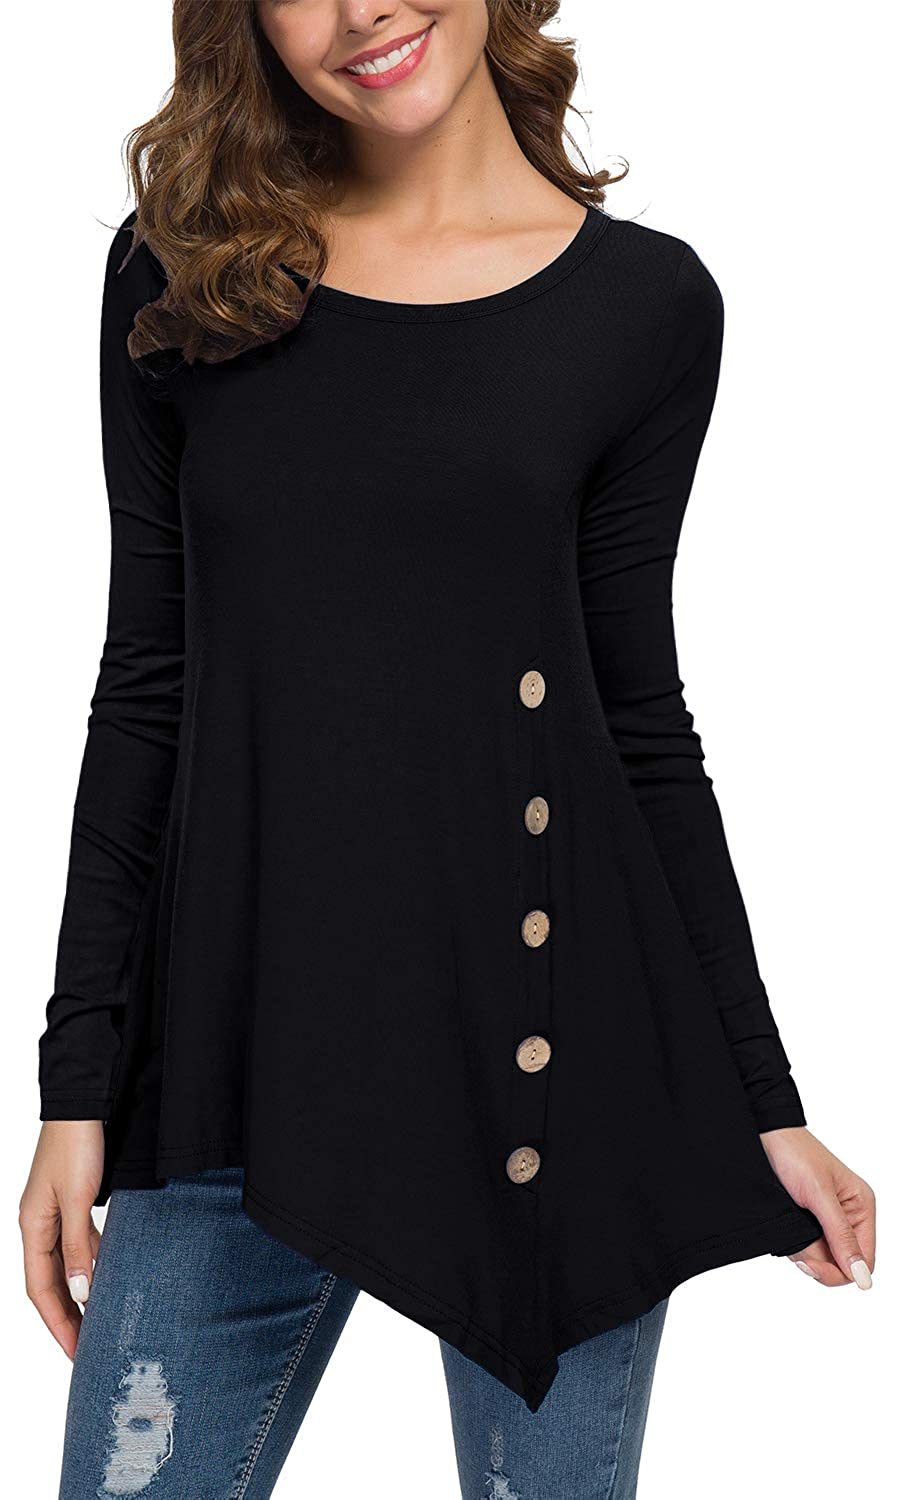 0b7ca16ce918 Viishow Women's Long Sleeve Scoop Neck Button Side Tunic Tops Blouse at  Amazon Women's Clothing store: